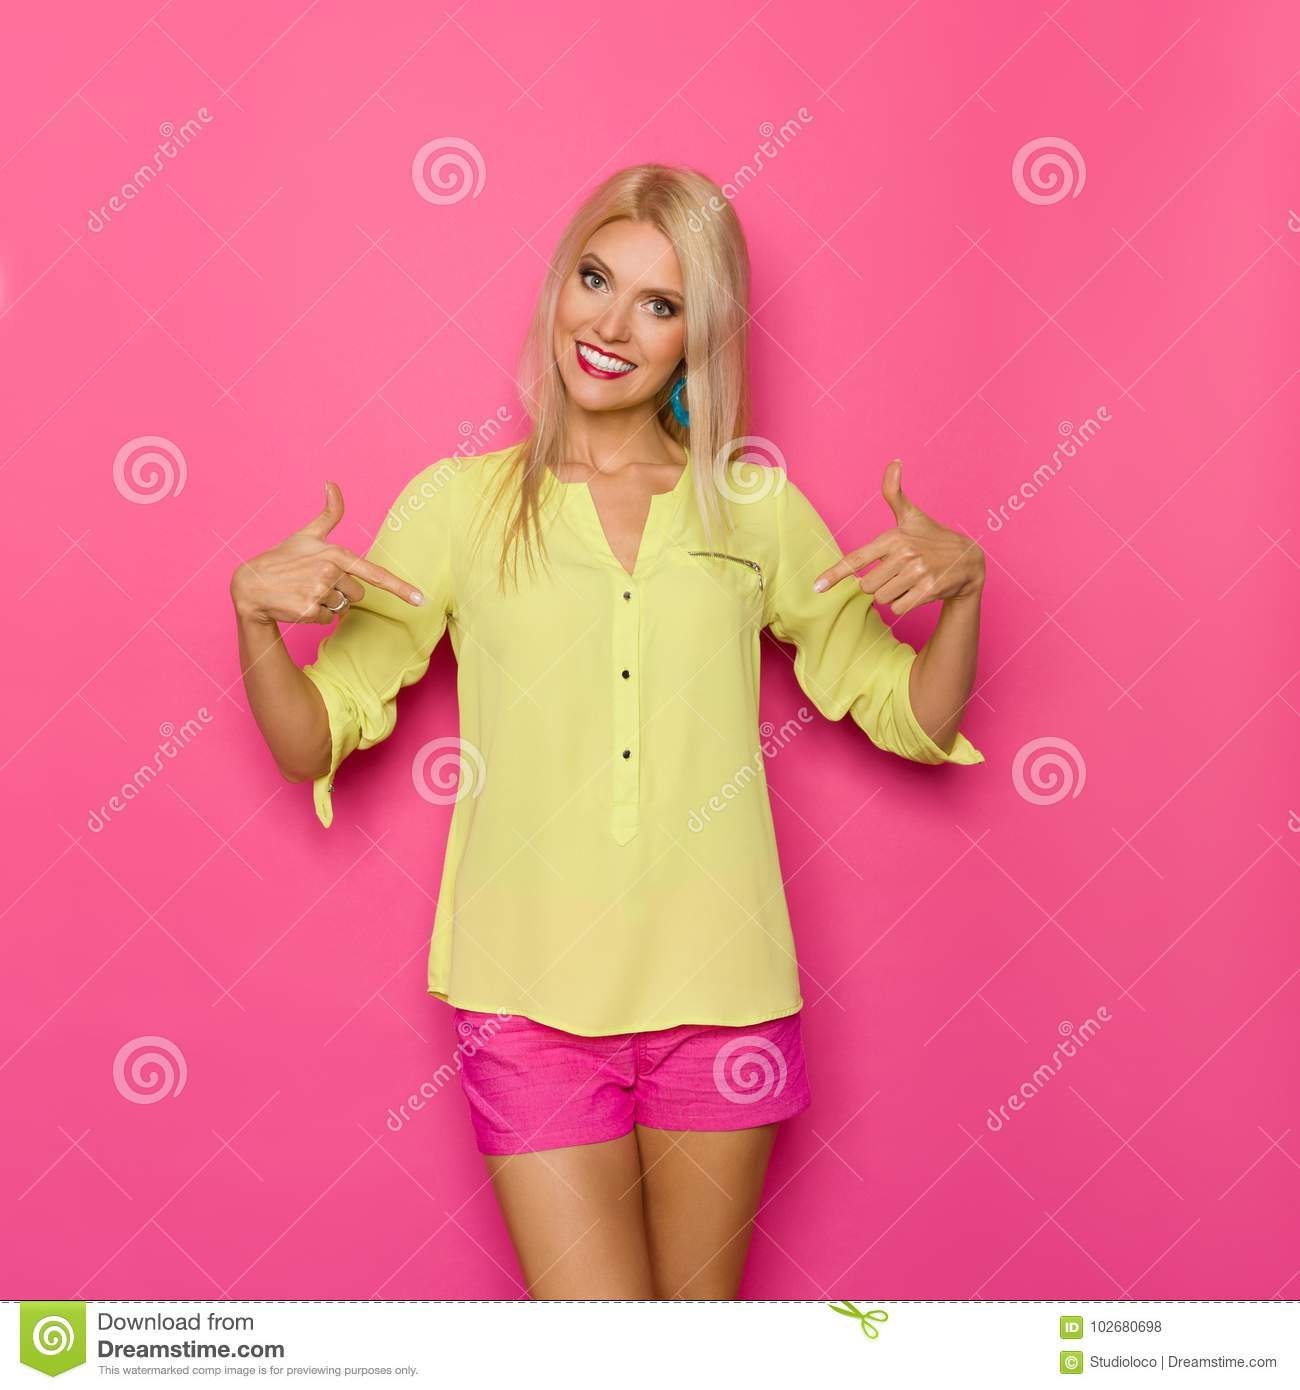 7cdaf6e0bf1af Beautiful blond young woman in yellow shirt and pink shorts is smiling and  pointing at her torso. Three quarter length studio shot on pink background.